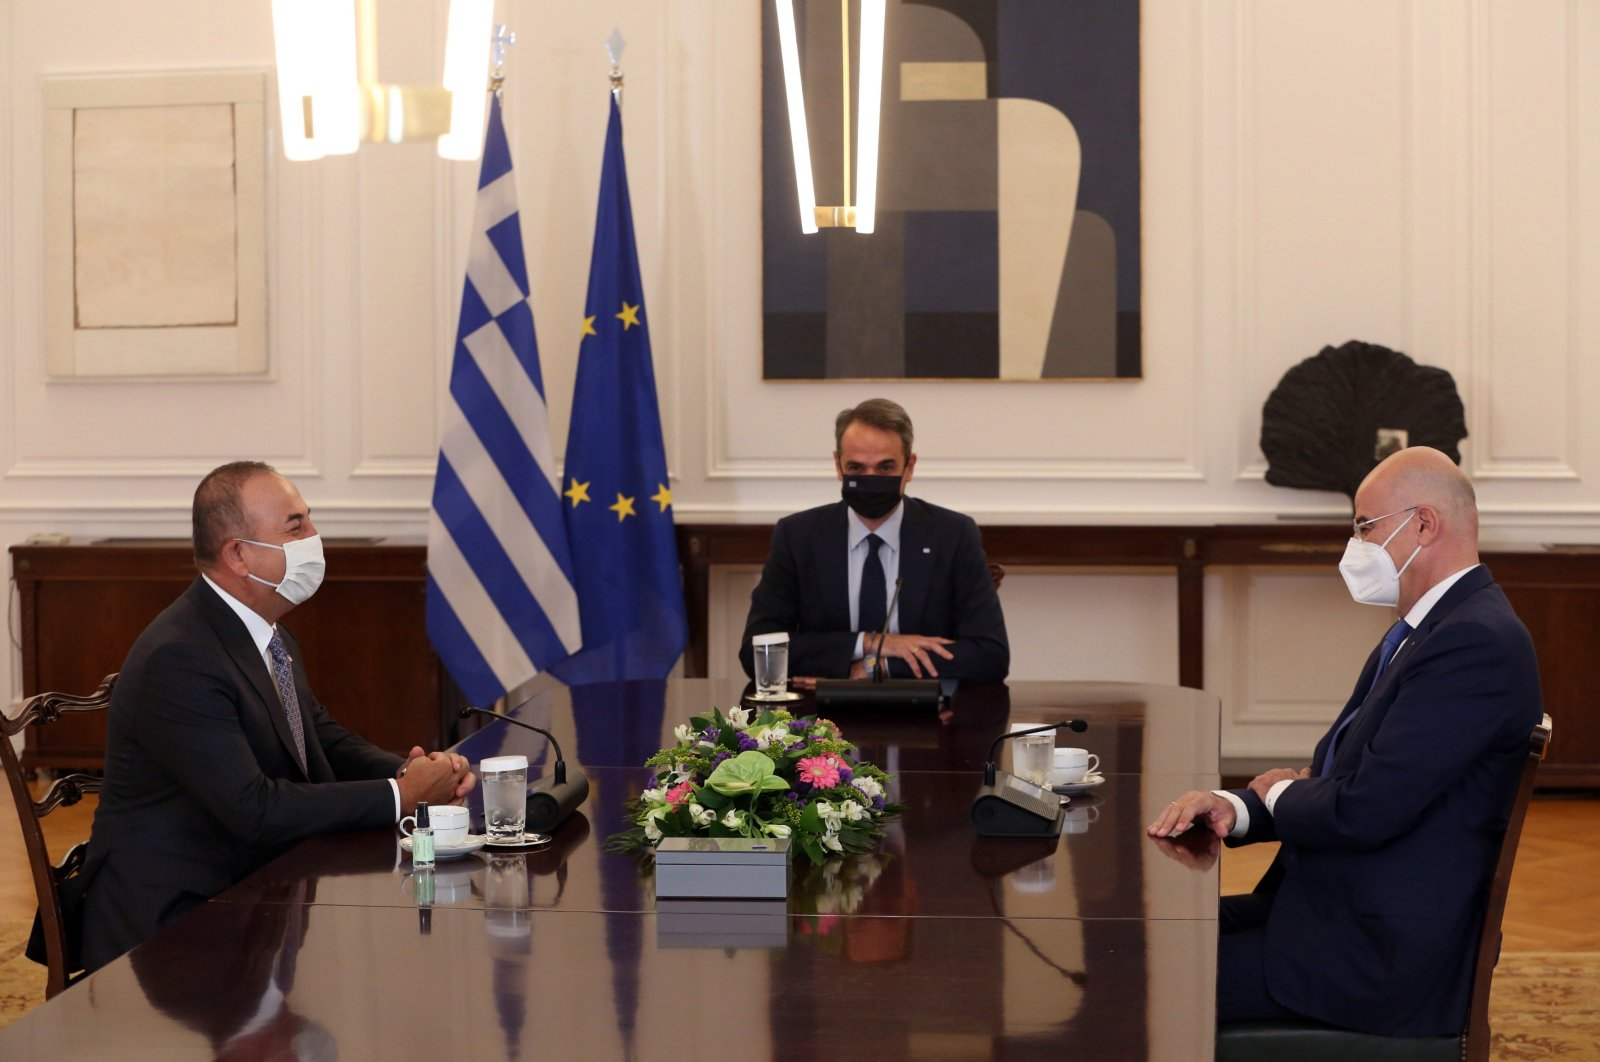 Greek Prime Minister Kyriakos Mitsotakis (C) meets with Turkish Foreign Minister Mevlut Cavusoglu (L) in the presence of Greek Foreign Minister Nikos Dendias at Maximos Mansion in Athens, Greece, May 31, 2021. (EPA Photo)